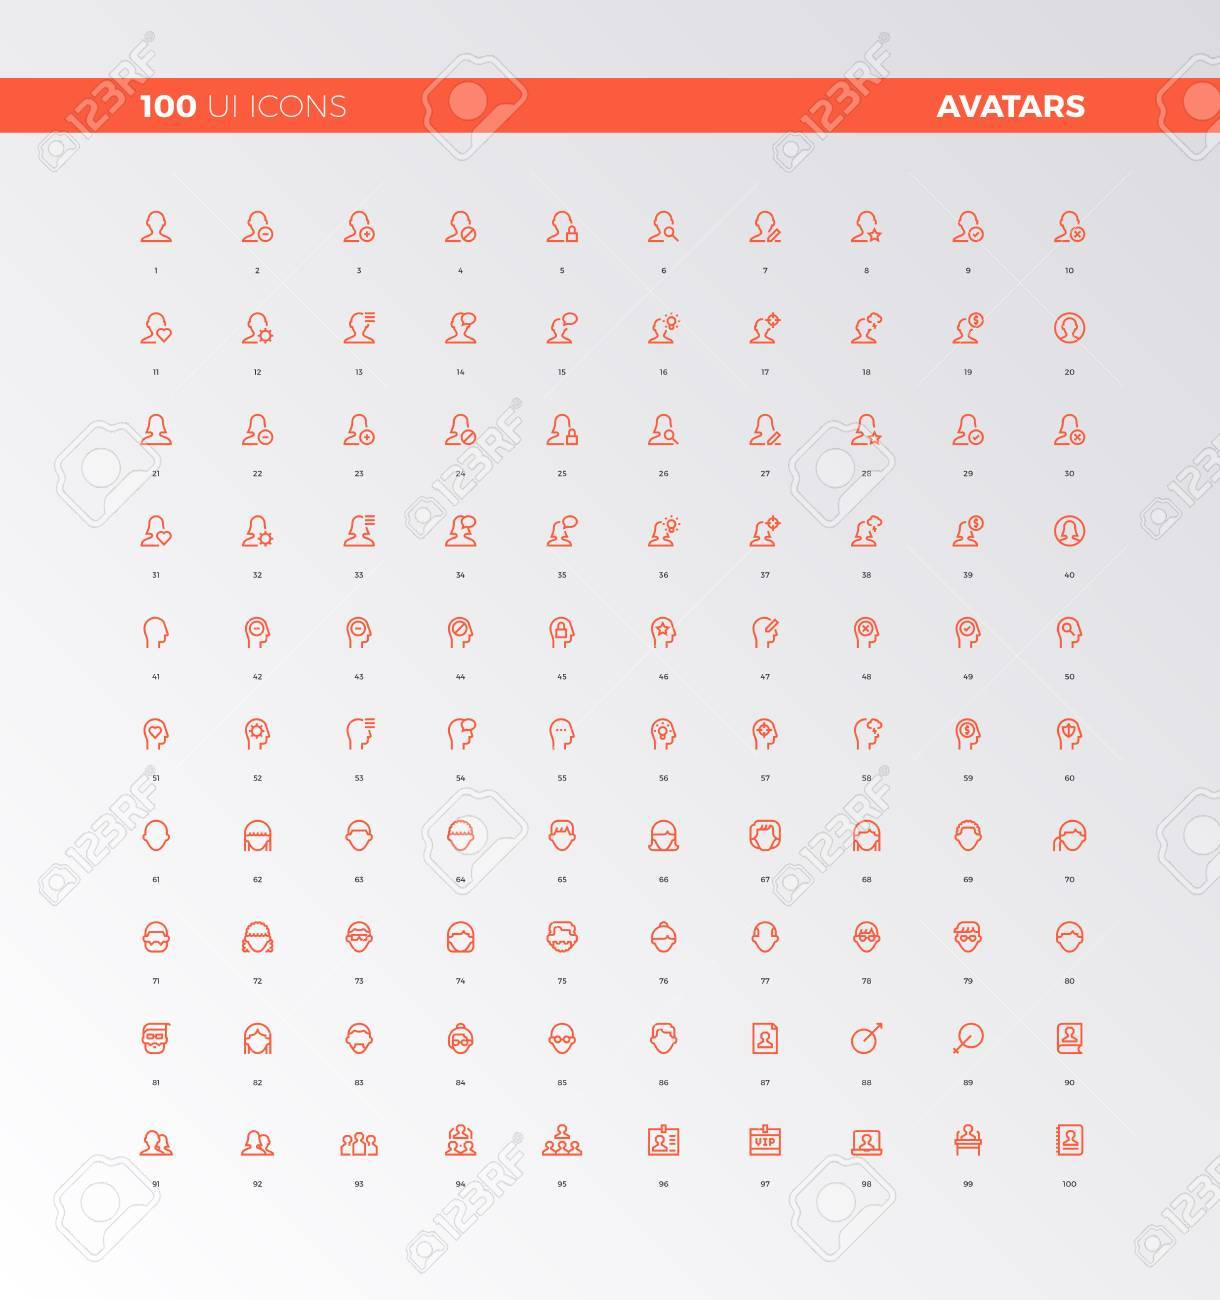 UI icons of human heads, people avatars  UX pictograms for user